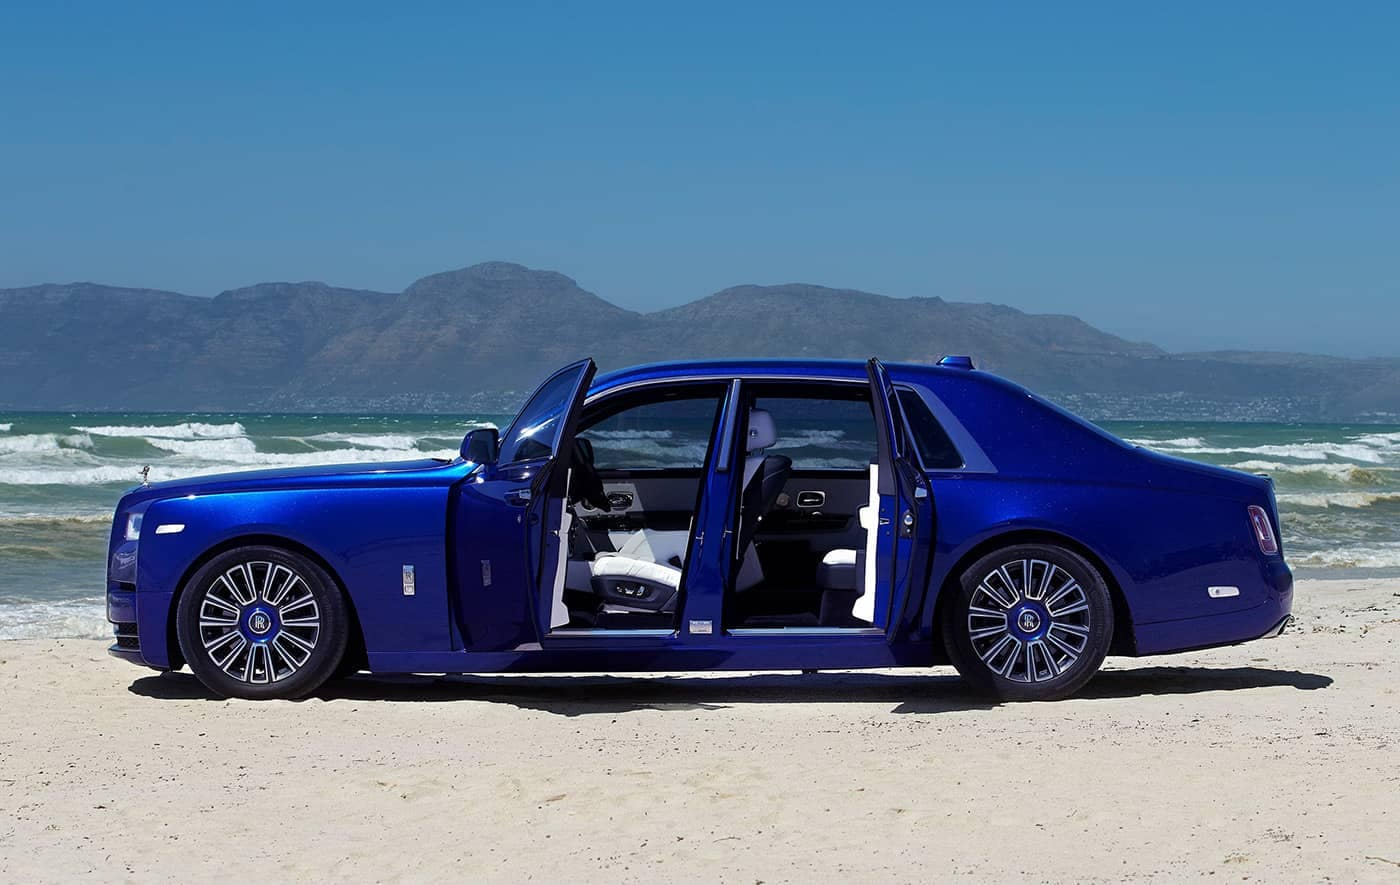 2020 Rolls Royce Phantom Oceanside